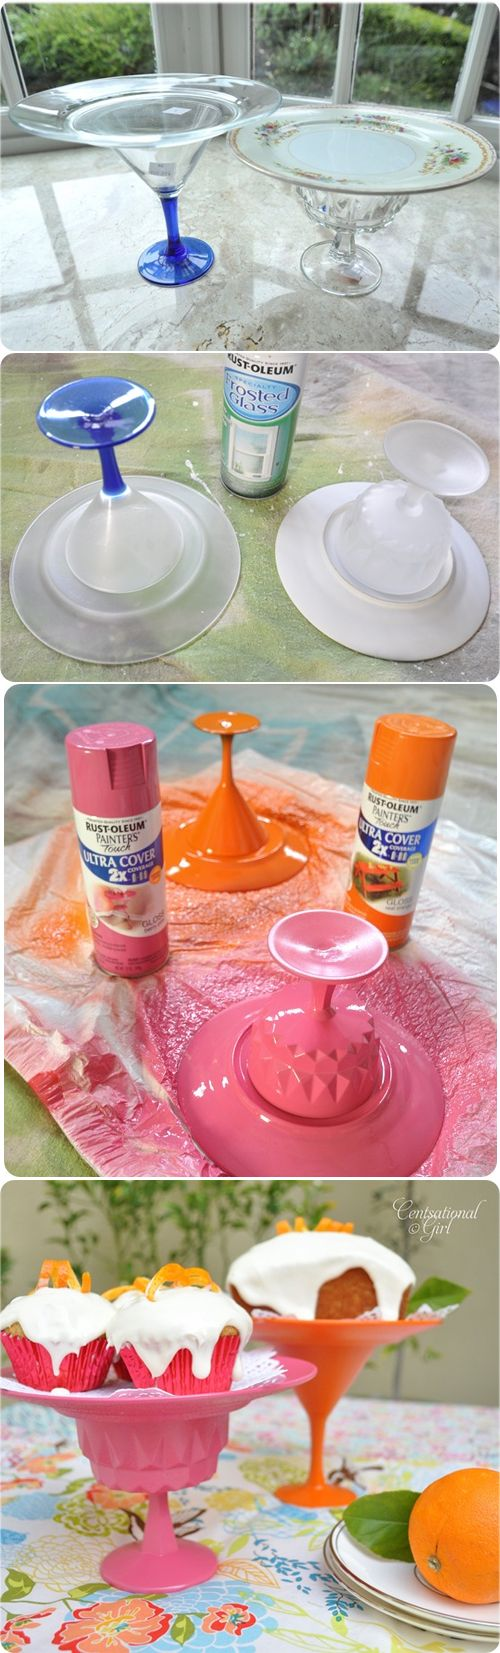 DIY Cupcake stands from thrift store finds